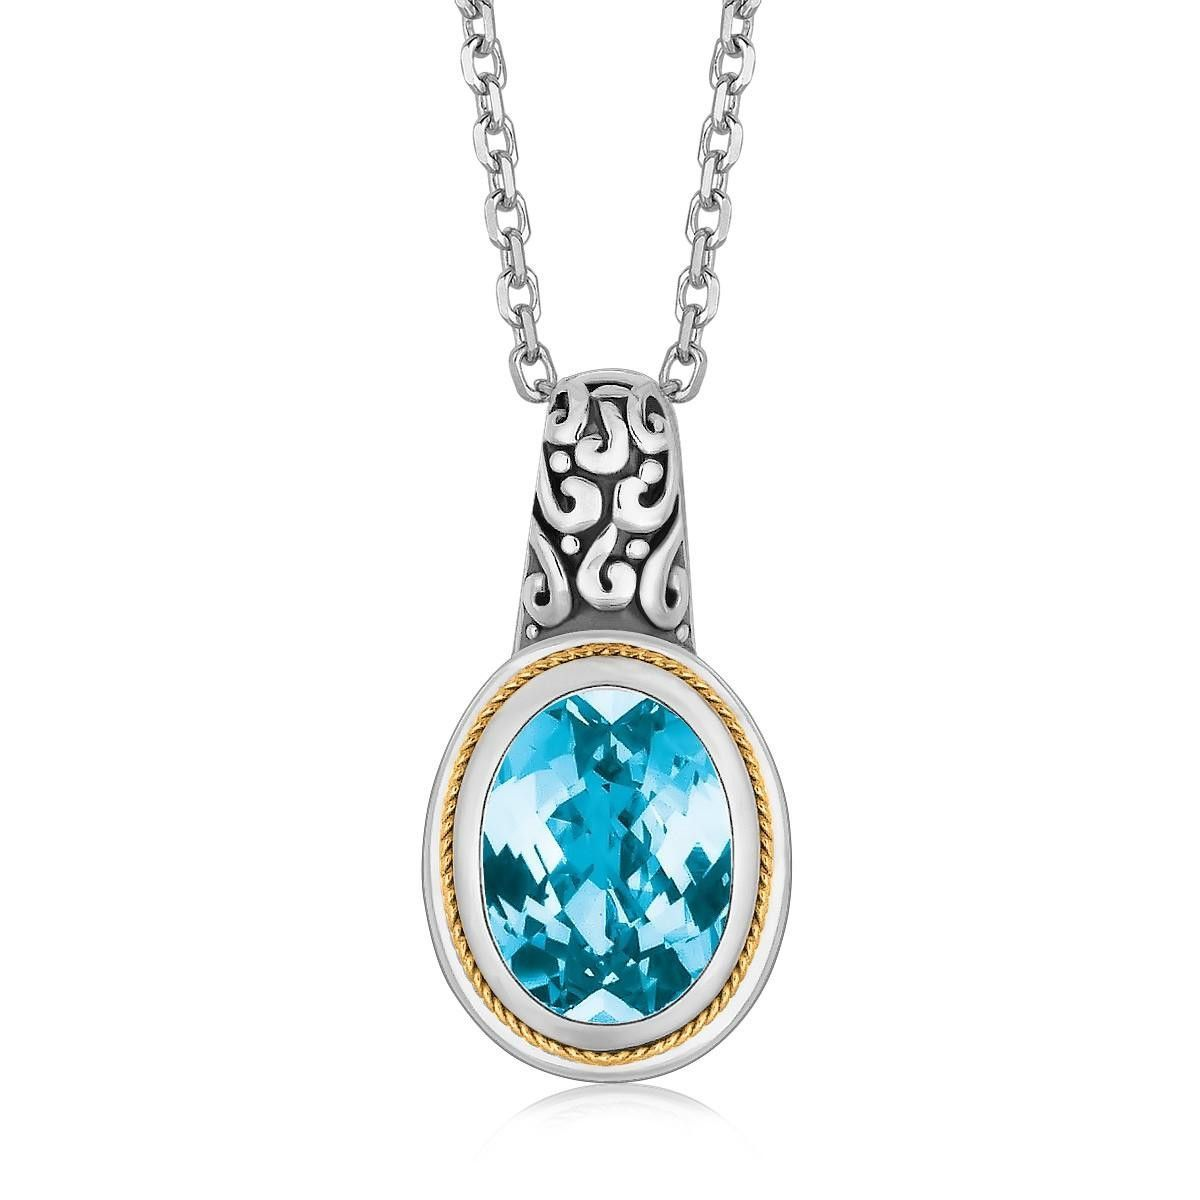 K yellow gold and sterling silver necklace with blue topaz